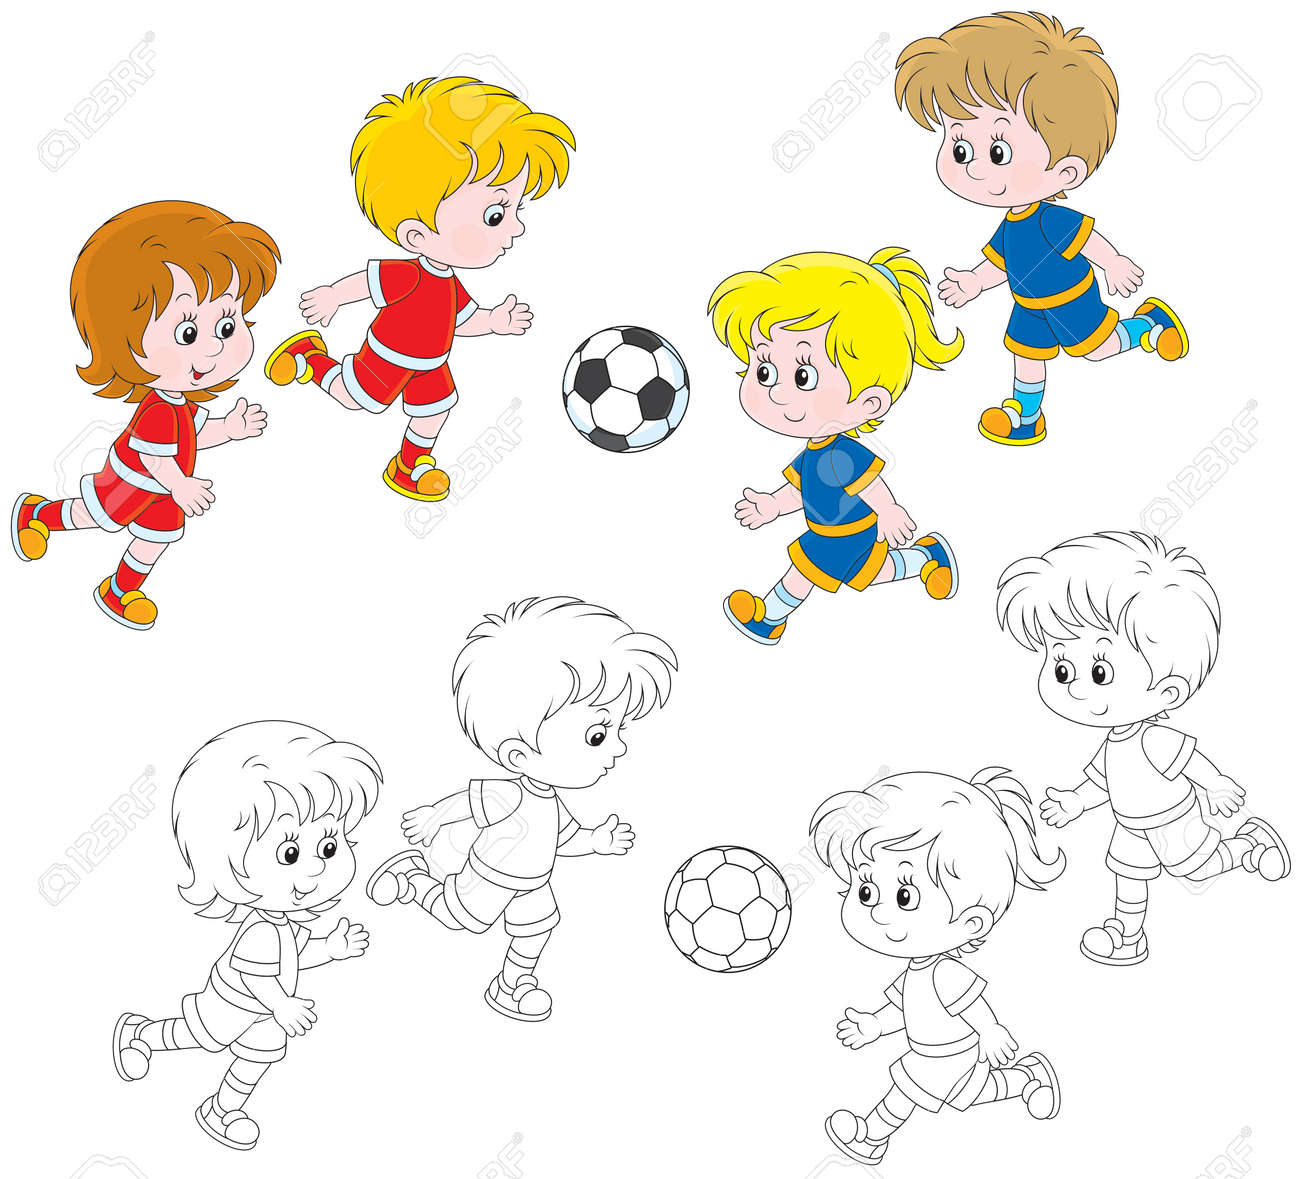 Children playing football Stock Vector - 24680741